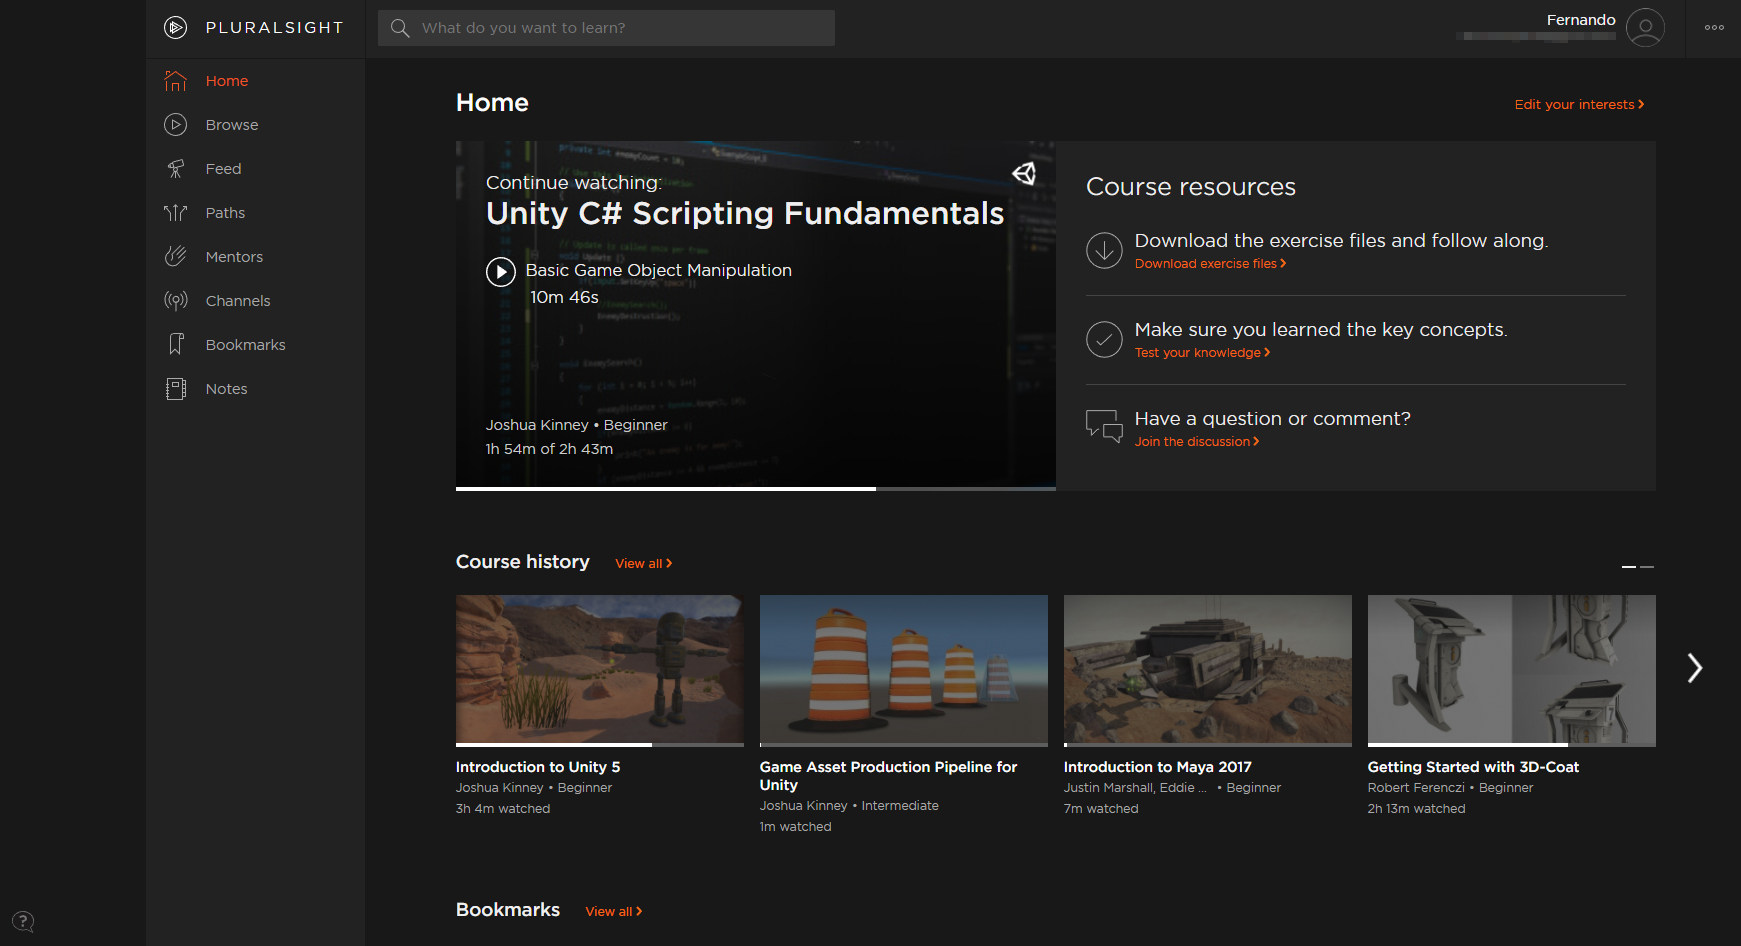 Pluralsight and some of the tutorials I've been looking into in order to learn Unity